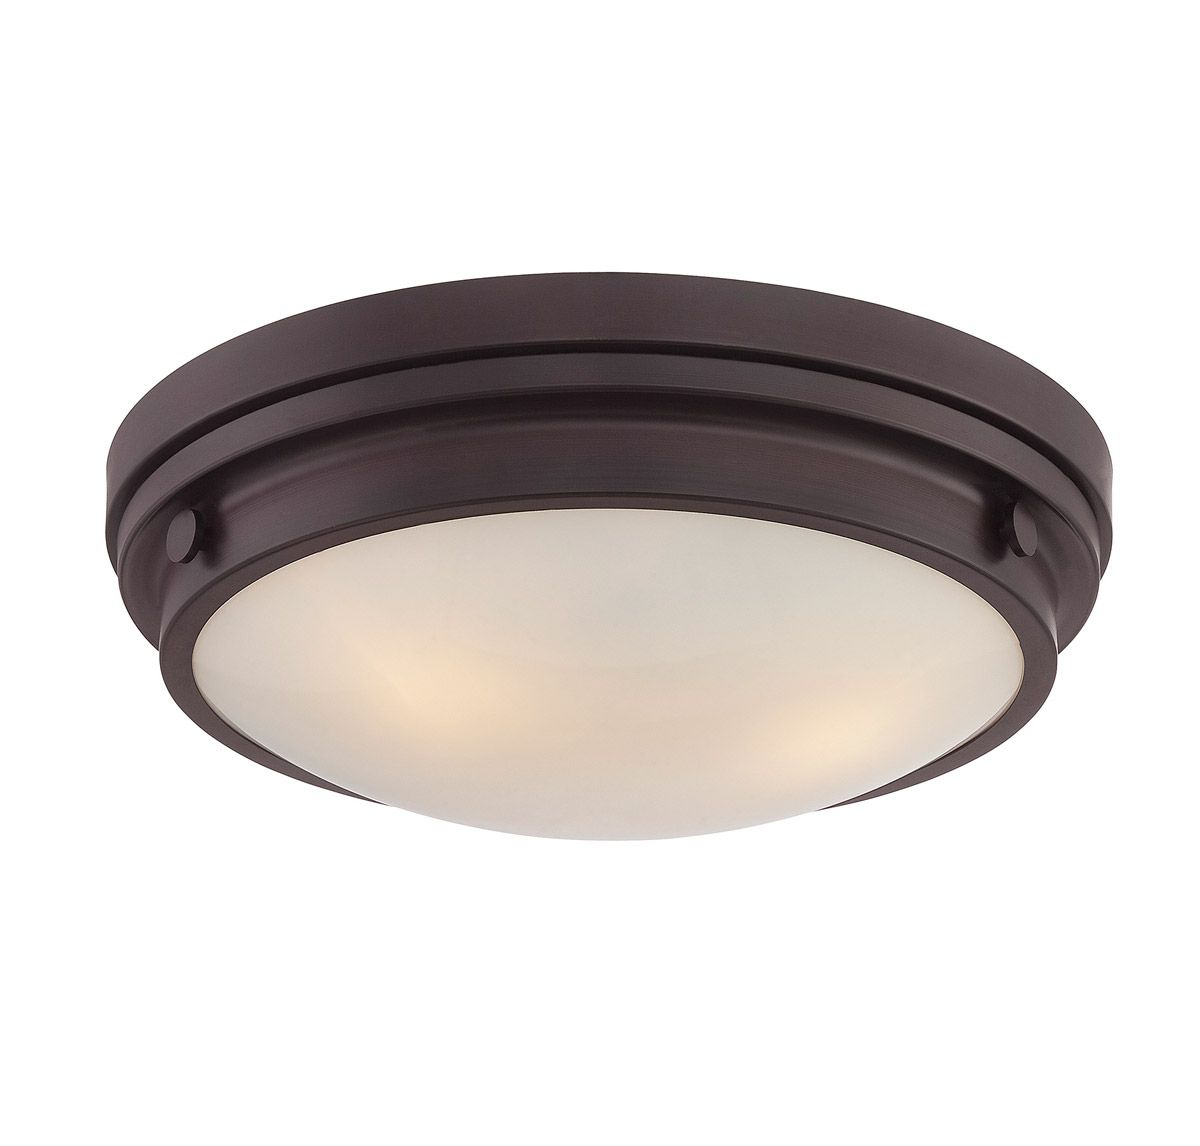 Savoy House 6 3350 16 13 Lucerne 3 Light 15 Inch English Bronze